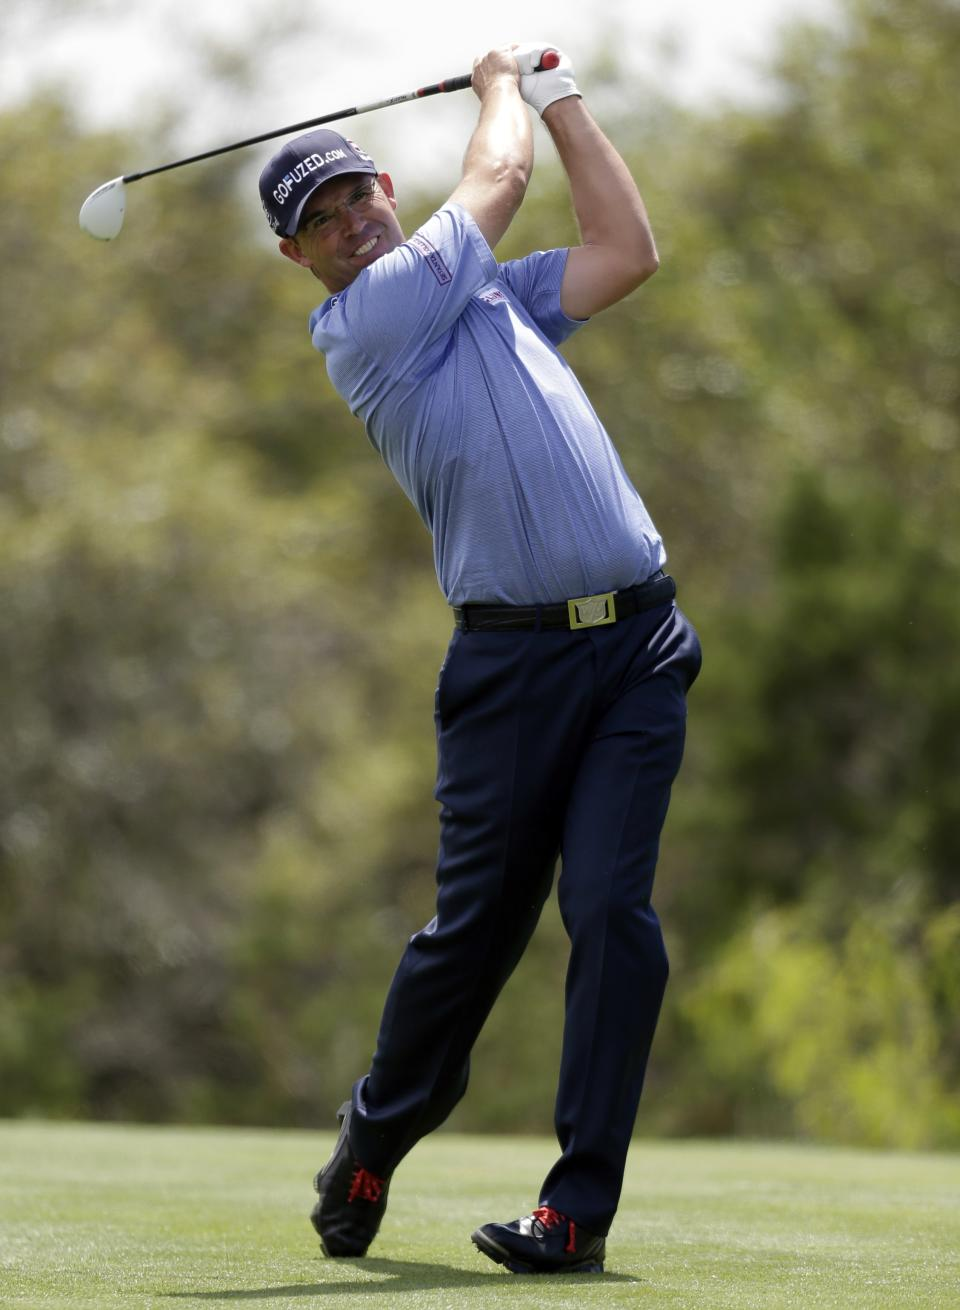 Padraig Harrington, of Ireland, watches his drive on the 15th hole during the second round of the Texas Open golf tournament, Friday, April 5, 2013, in San Antonio.  (AP Photo/Eric Gay)